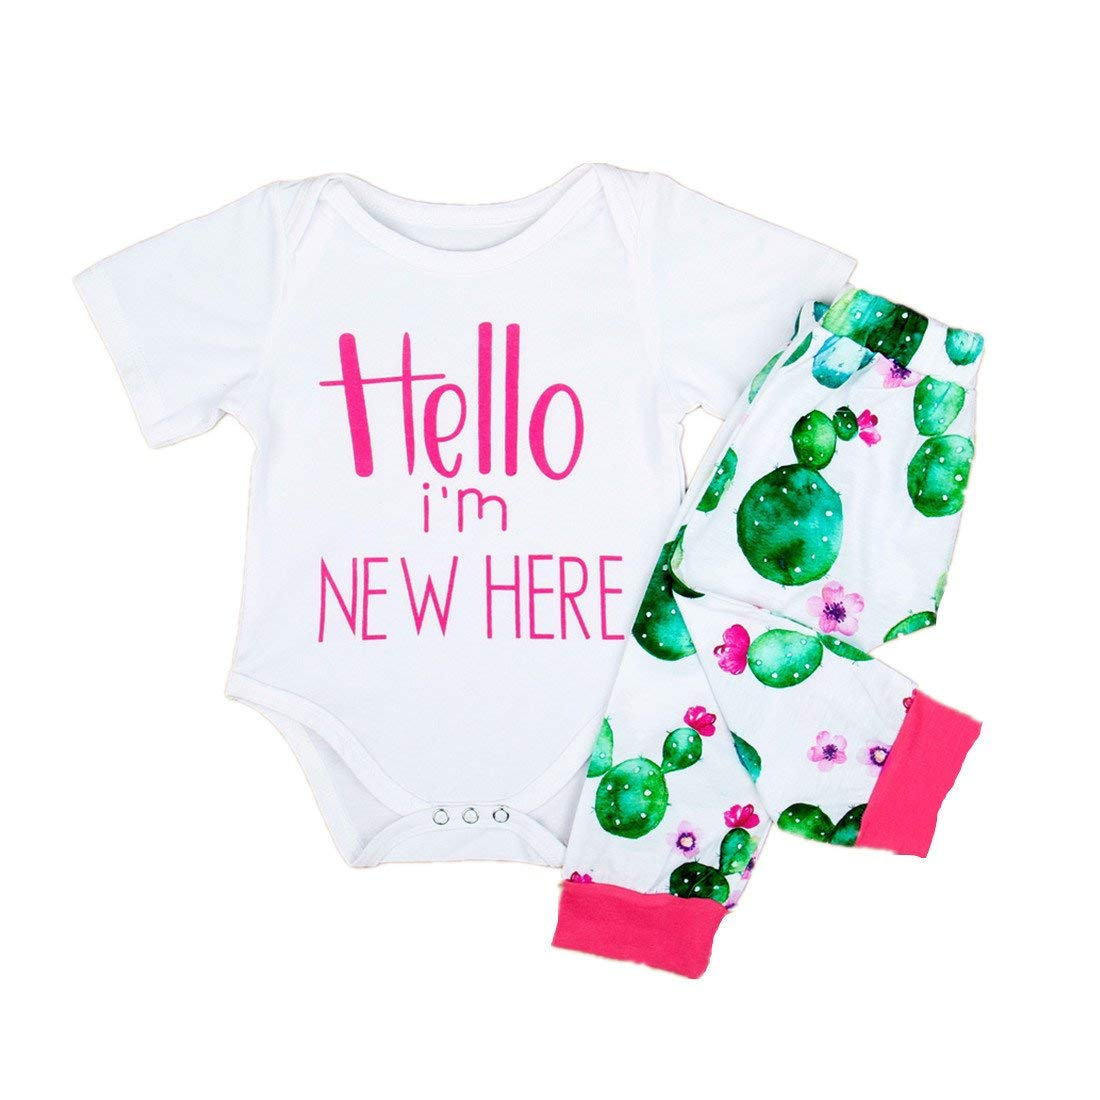 Boys' Baby Clothing Special Section Cute Fishing Kids Bodysuits Cotton Polyester Newborn Jumpsuits Lovely Summer Children Clothes For Boys Girls Short Sleeve Onesie Bodysuits & One-pieces